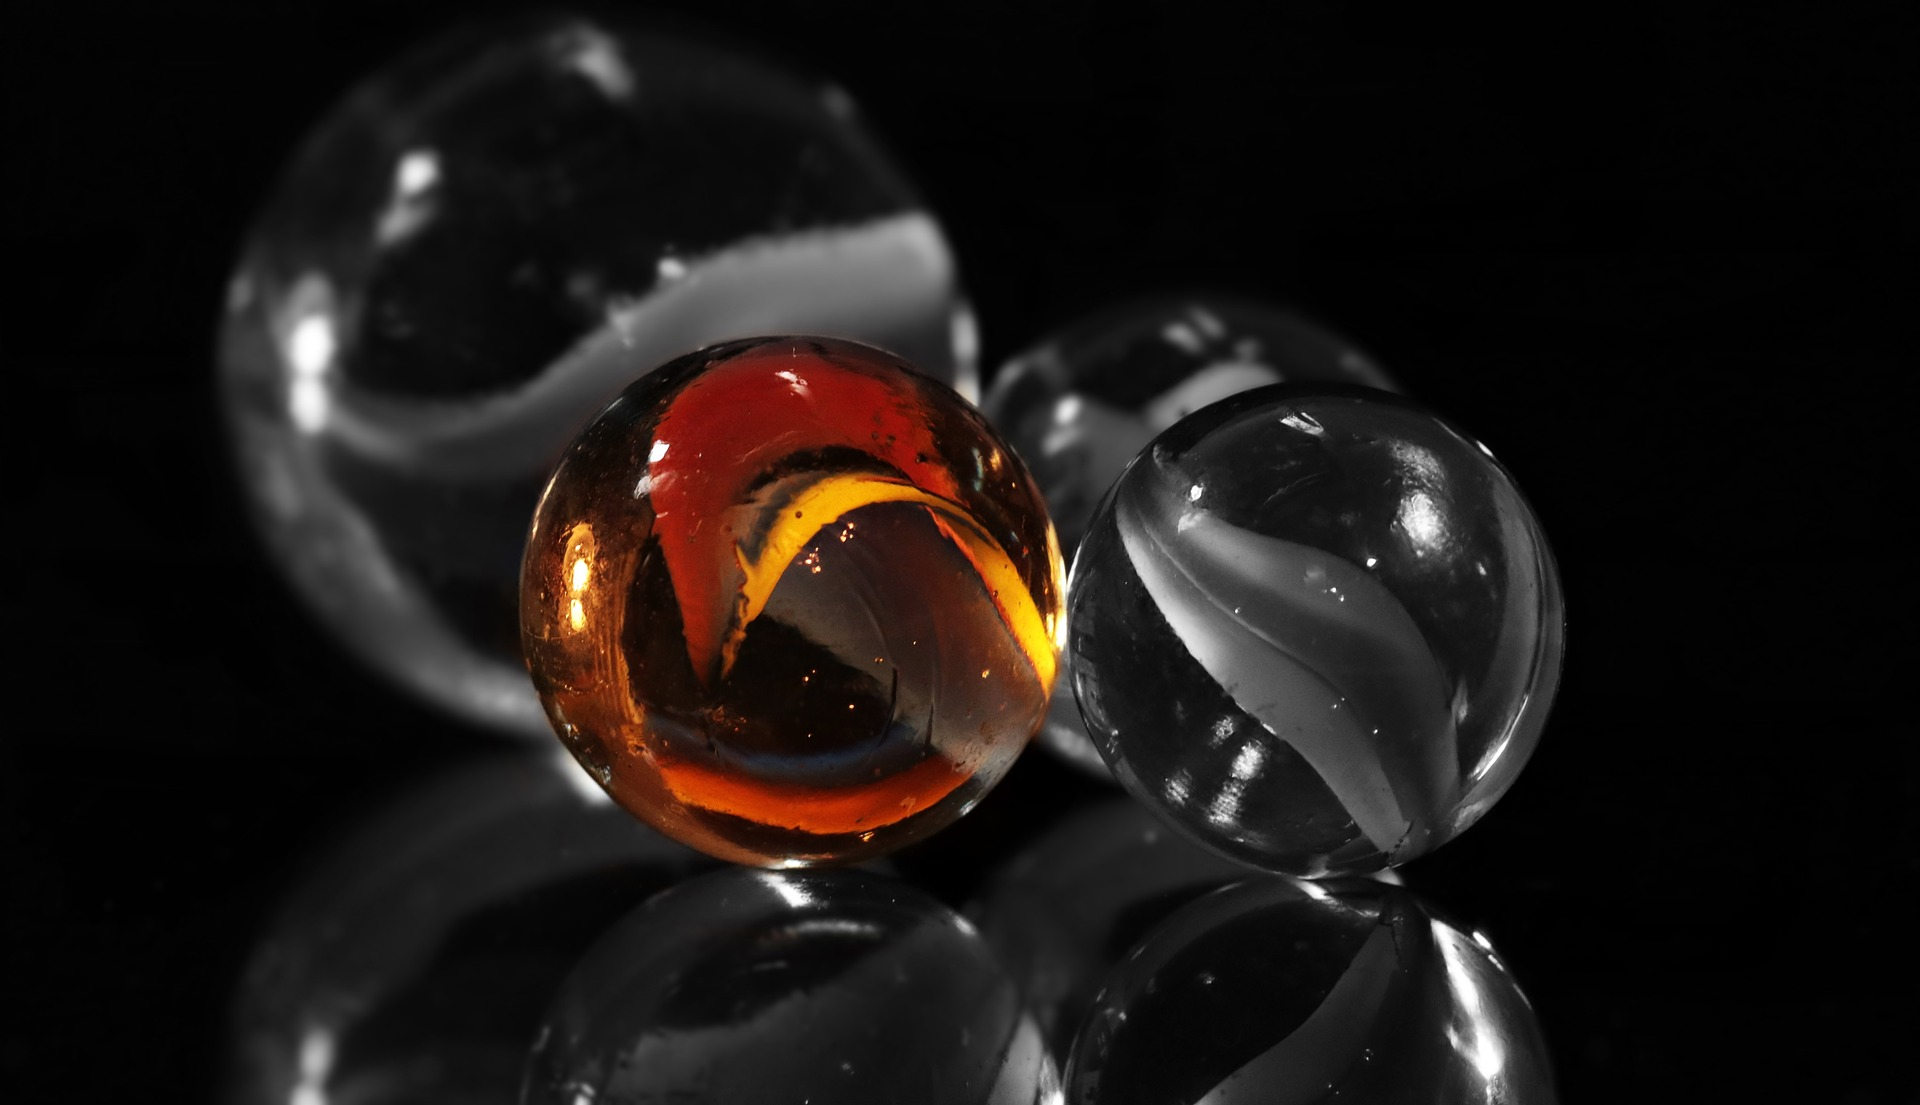 marbles-1821547_1920